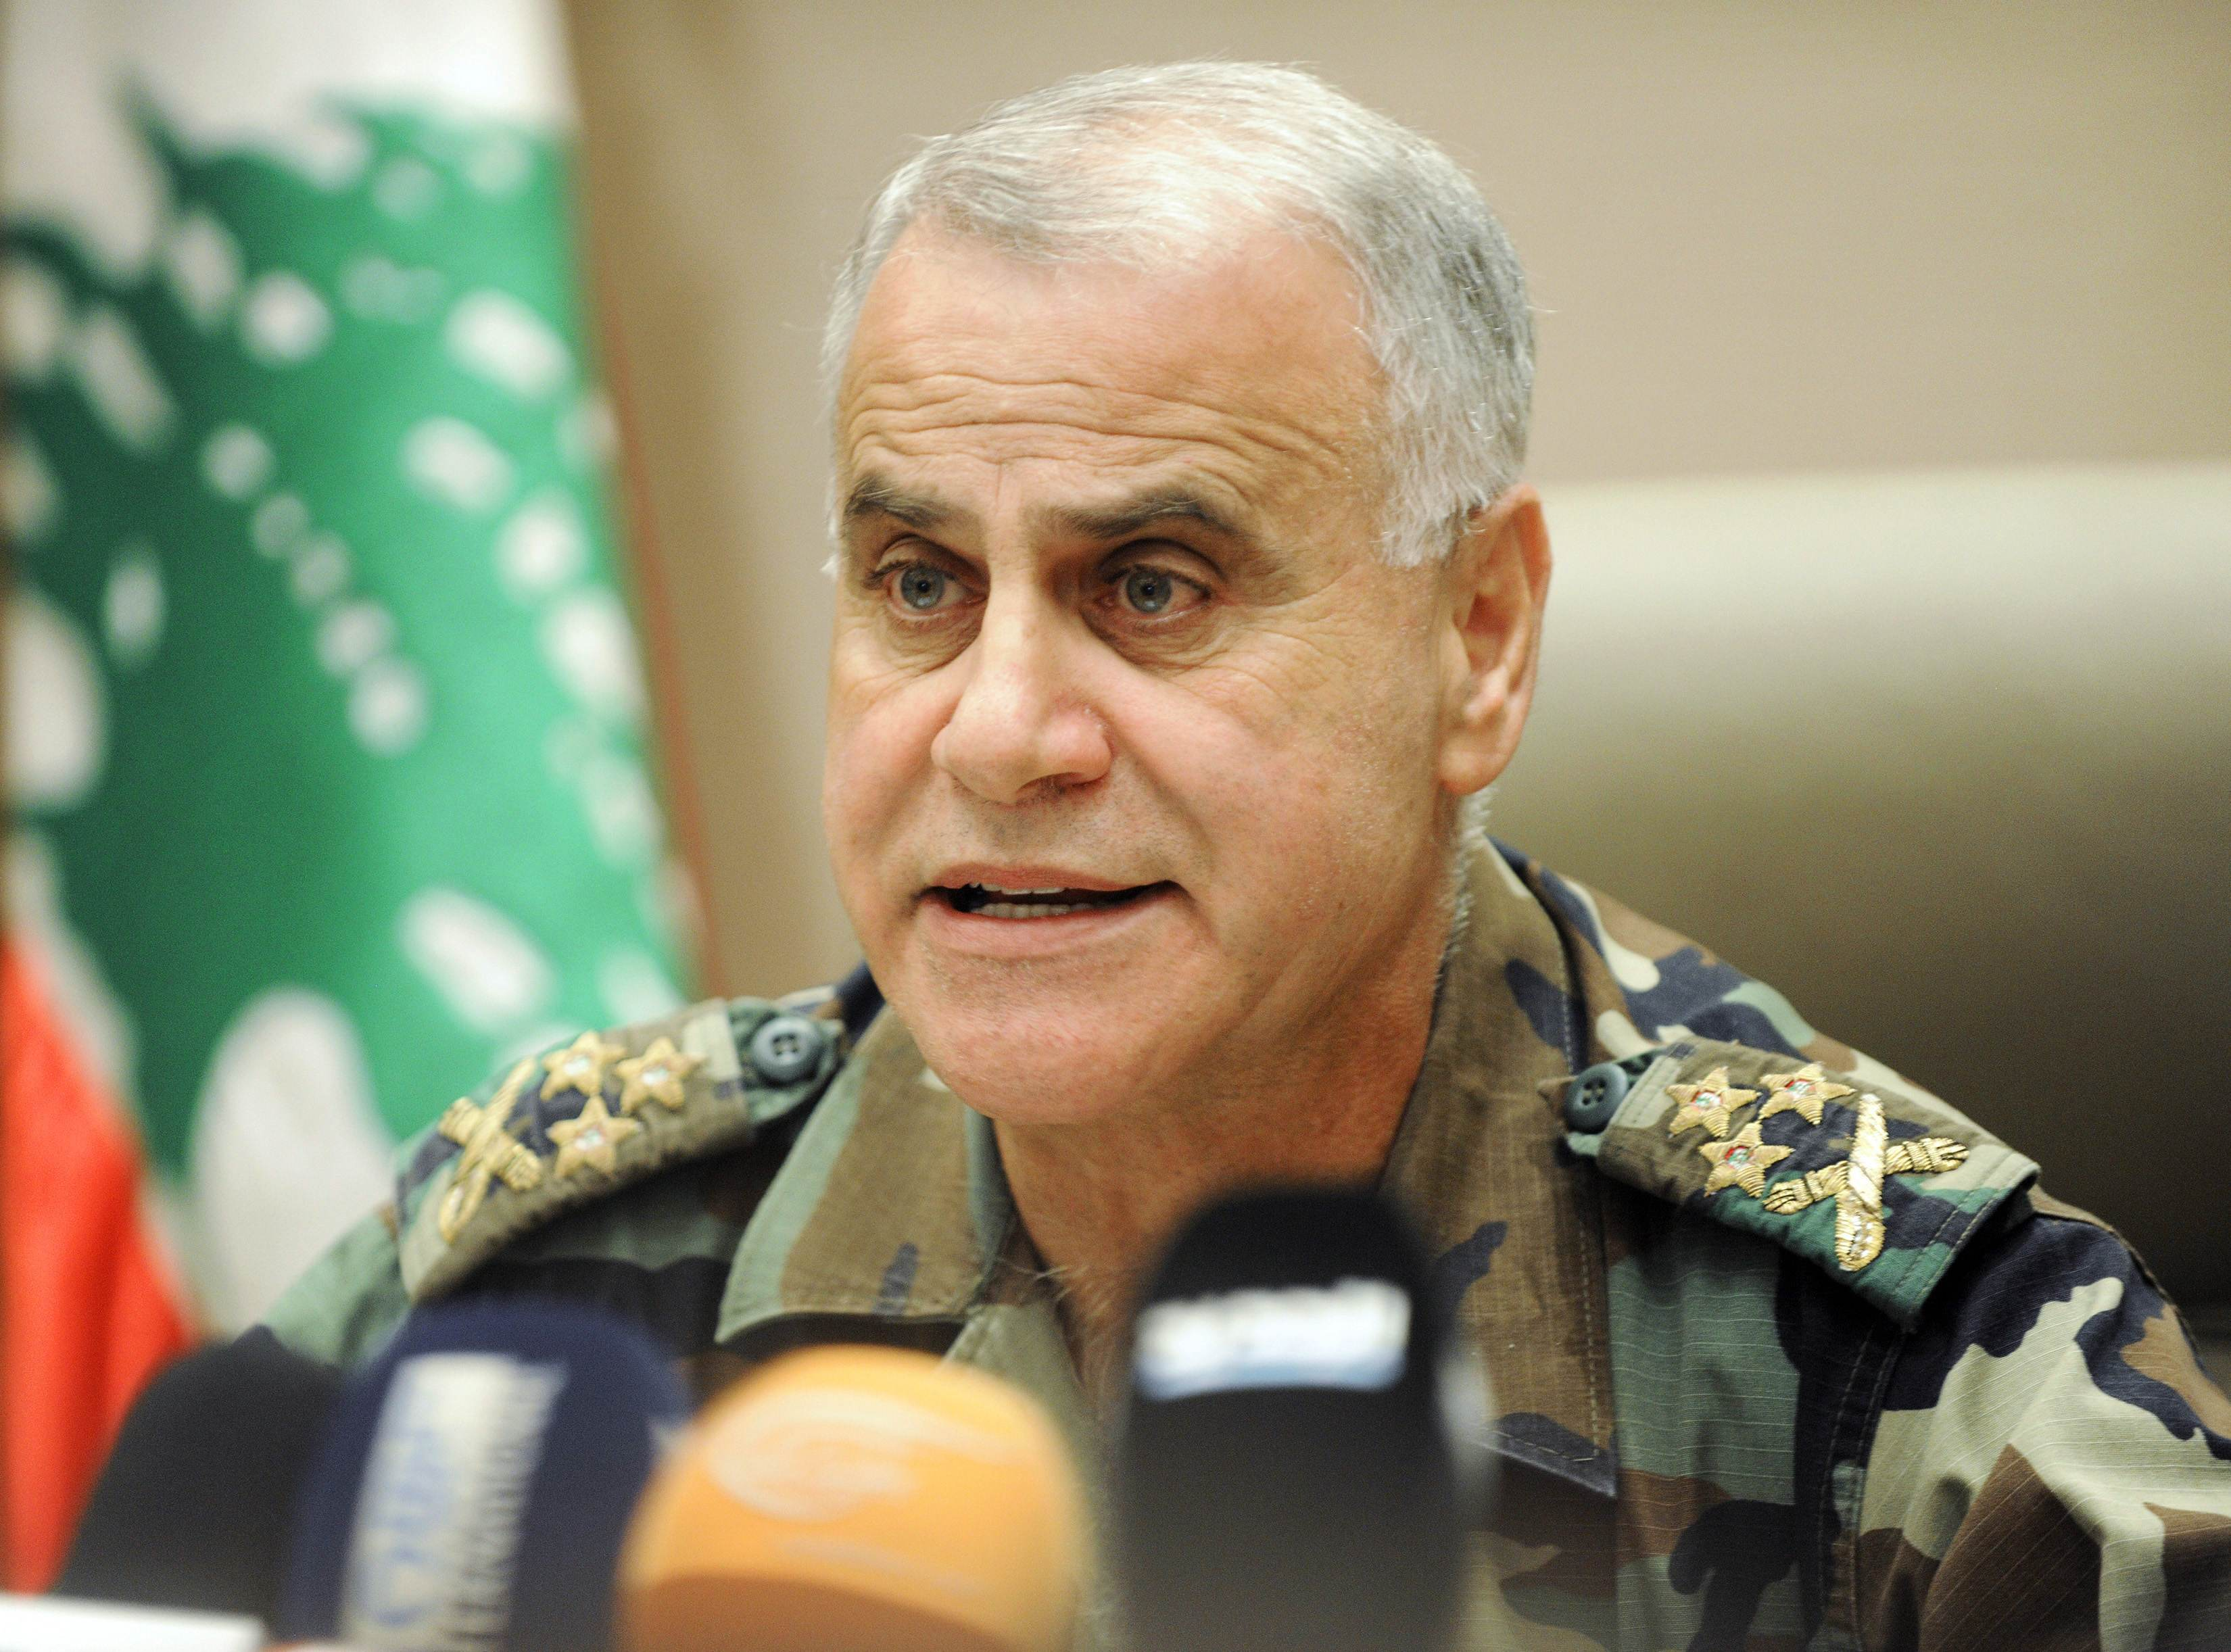 Lebanon Army Chief Warns of ISIS Incursion as Militants Attack Third Country